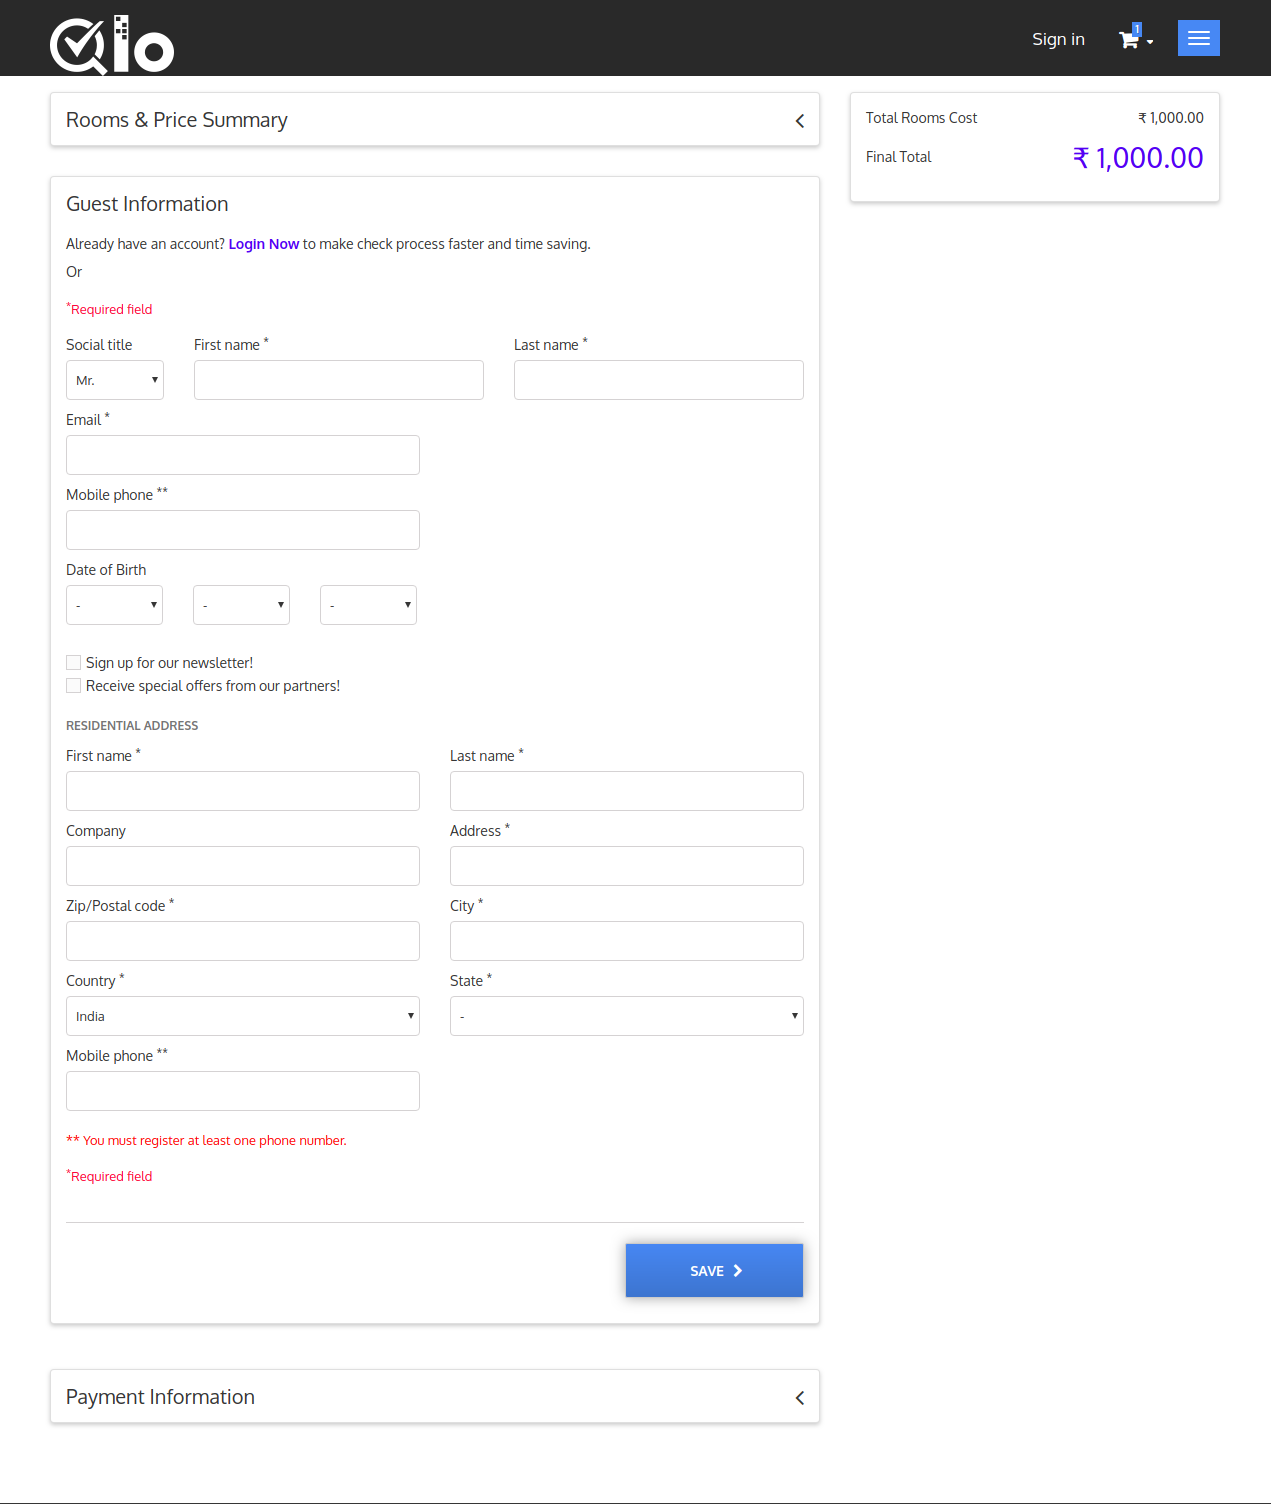 QLO Reservation System - QloApps Hotel Reservation